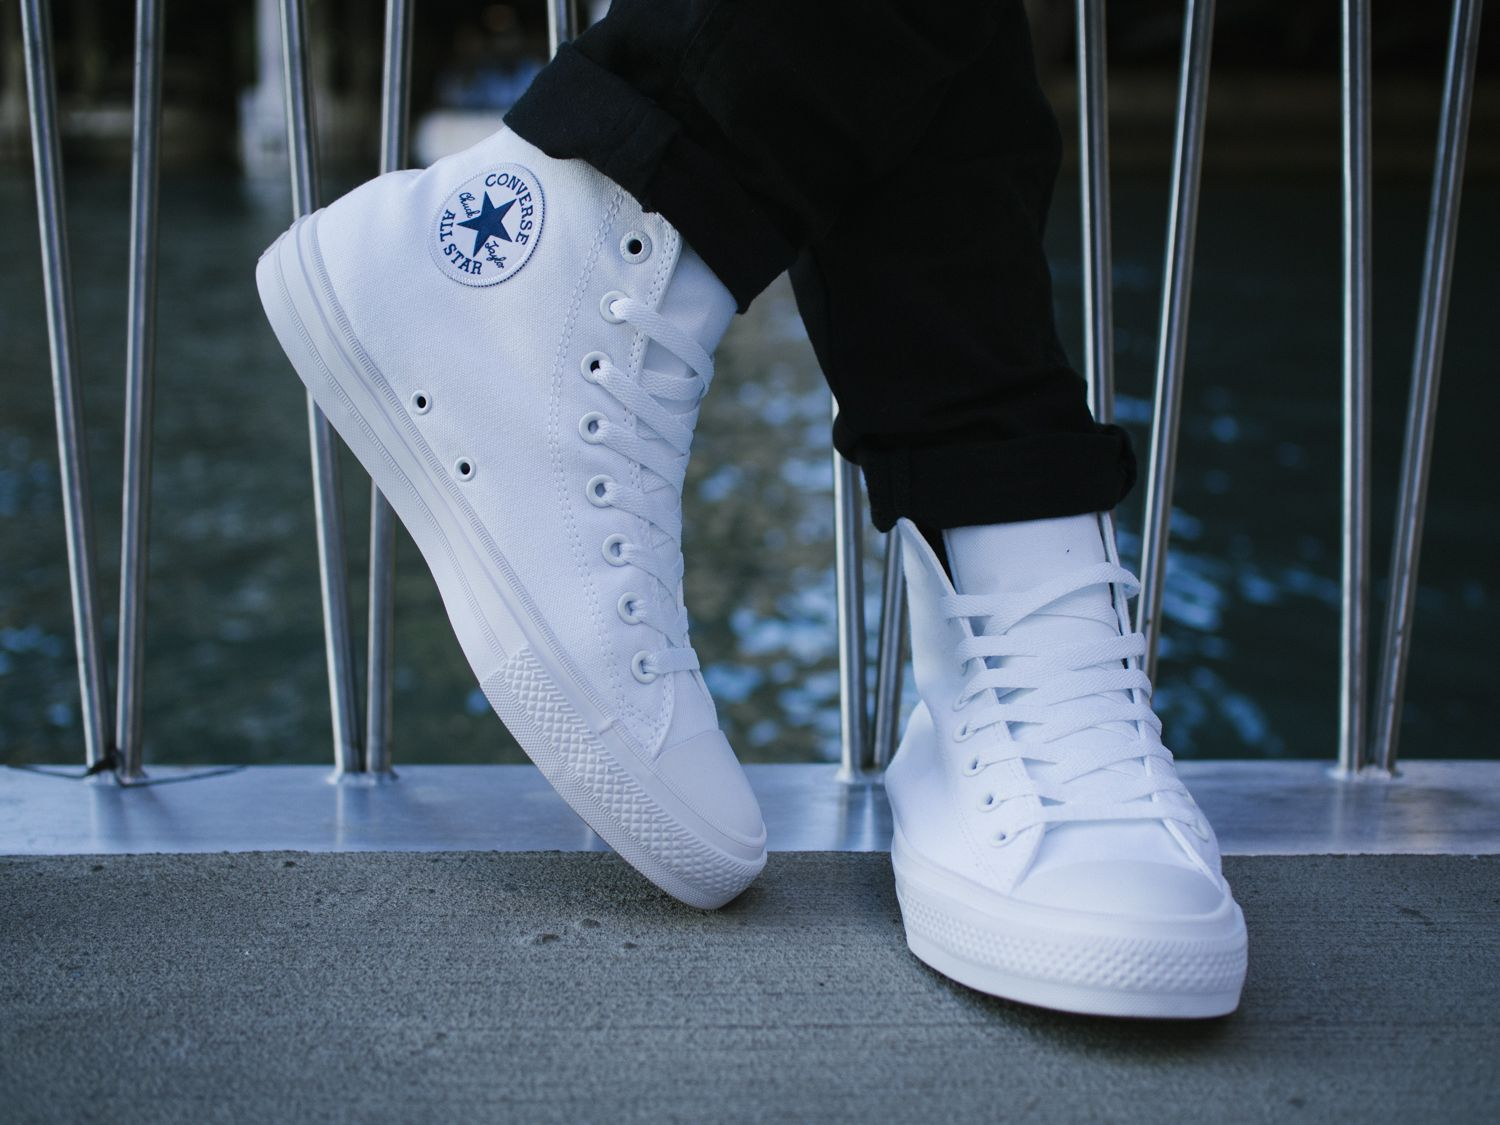 c799baffecad4d Tailored Selects    Chuck Taylor All Star II